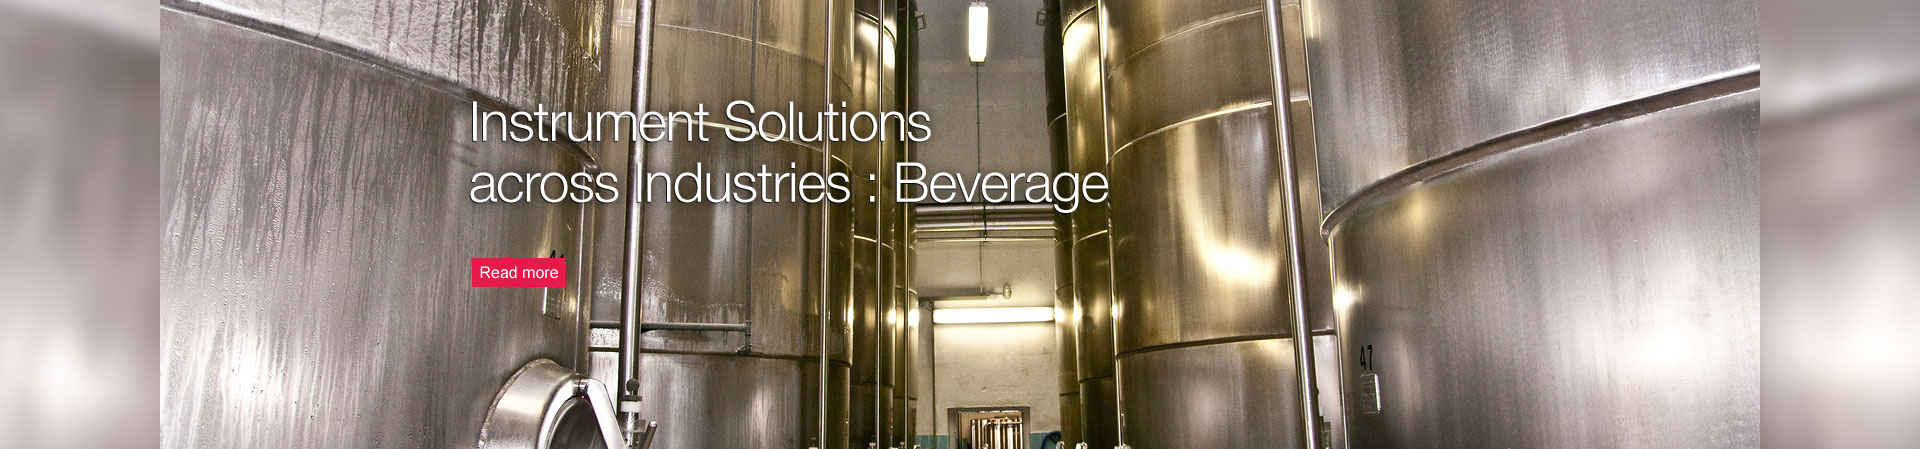 Instrument Solutions across Industries : Beverage